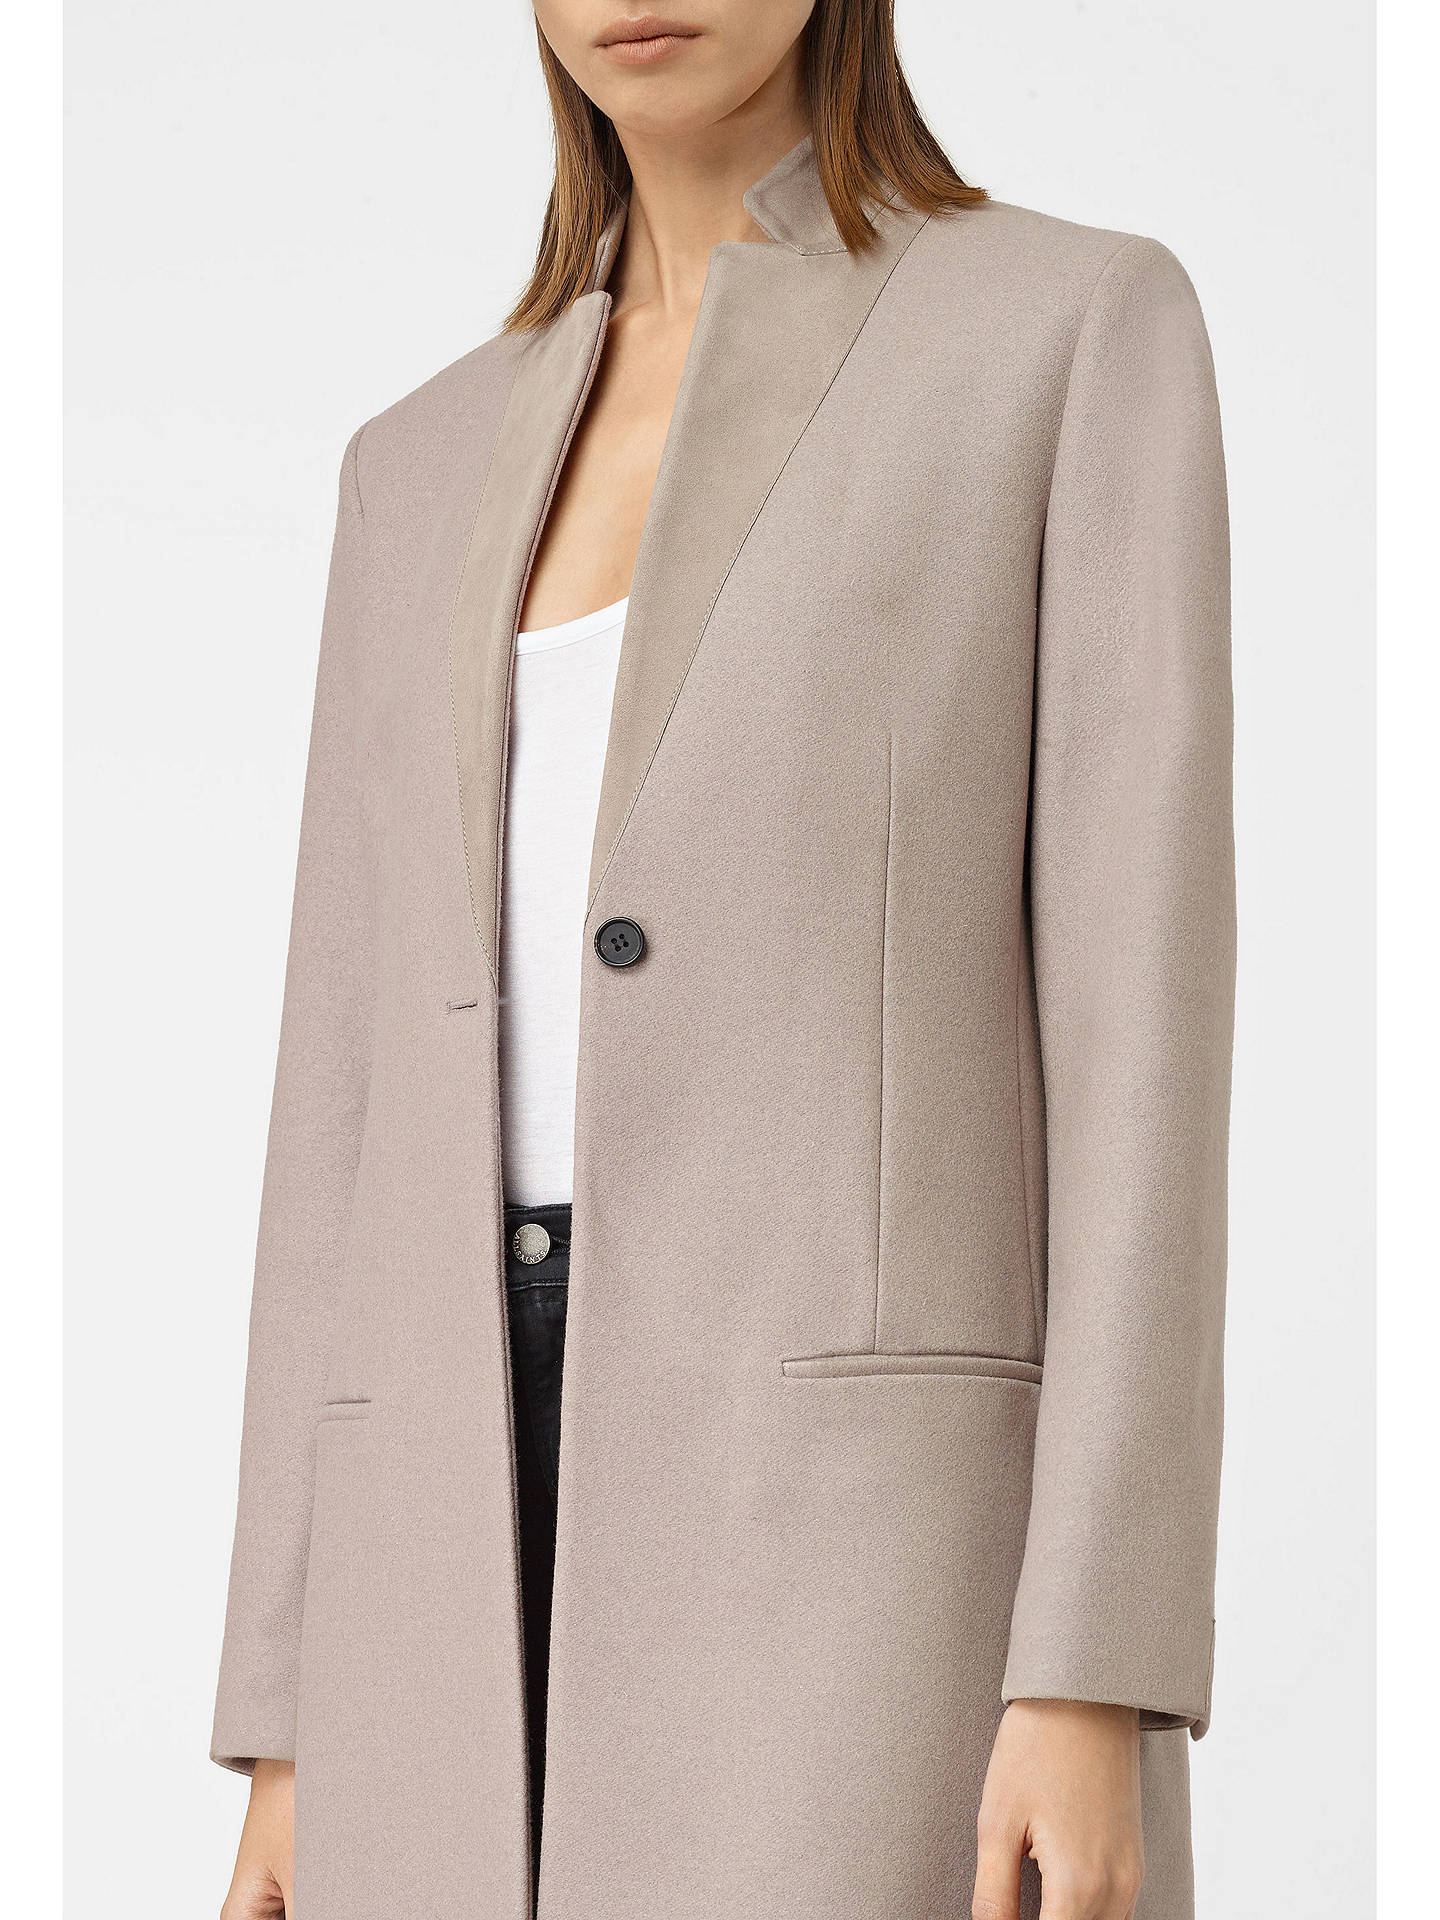 AllSaints Leni Coat at John Lewis & Partners